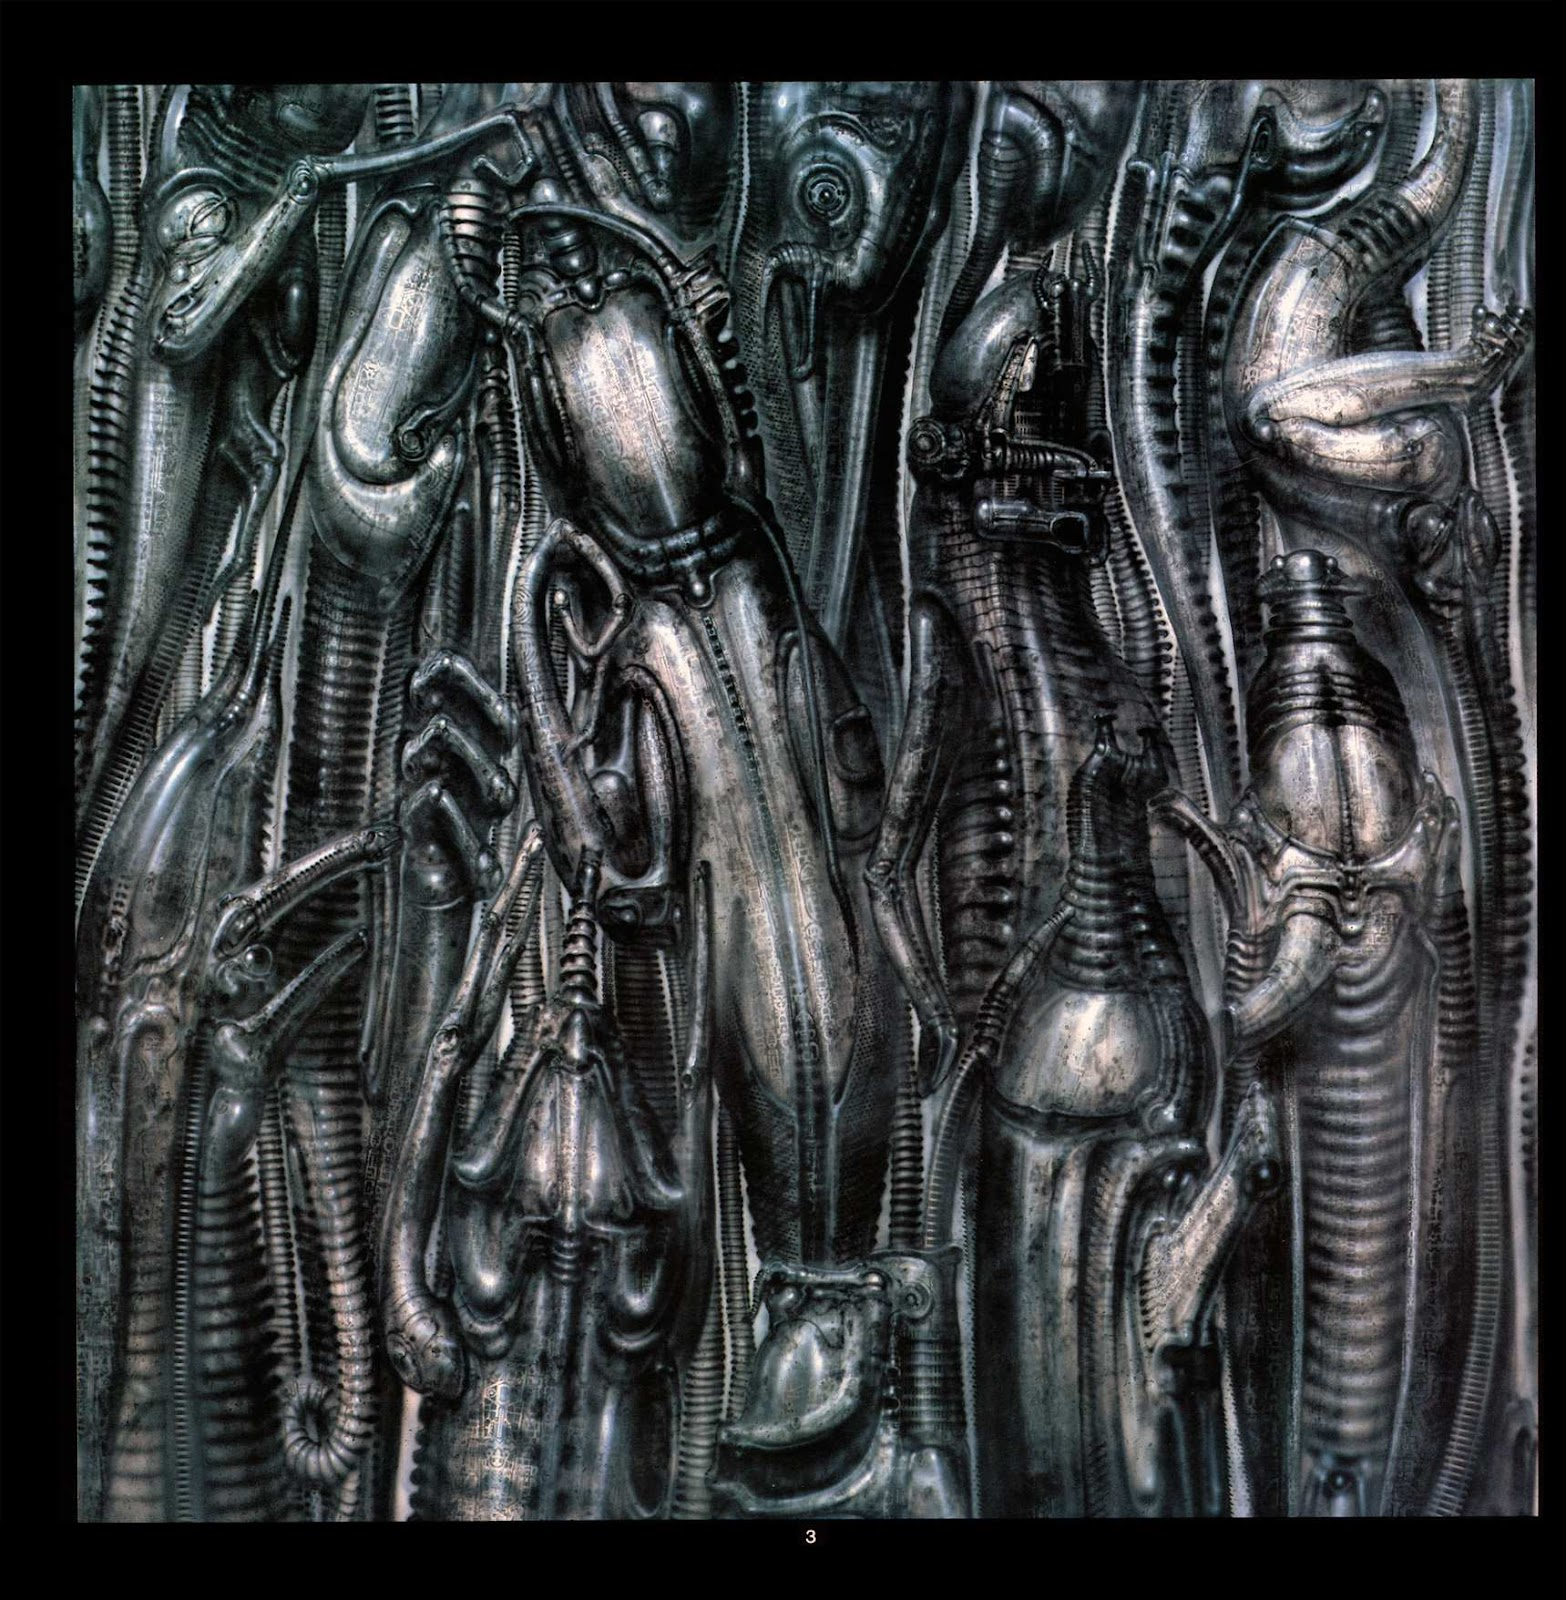 Read online Giger's Alien comic -  Issue # TPB - 5